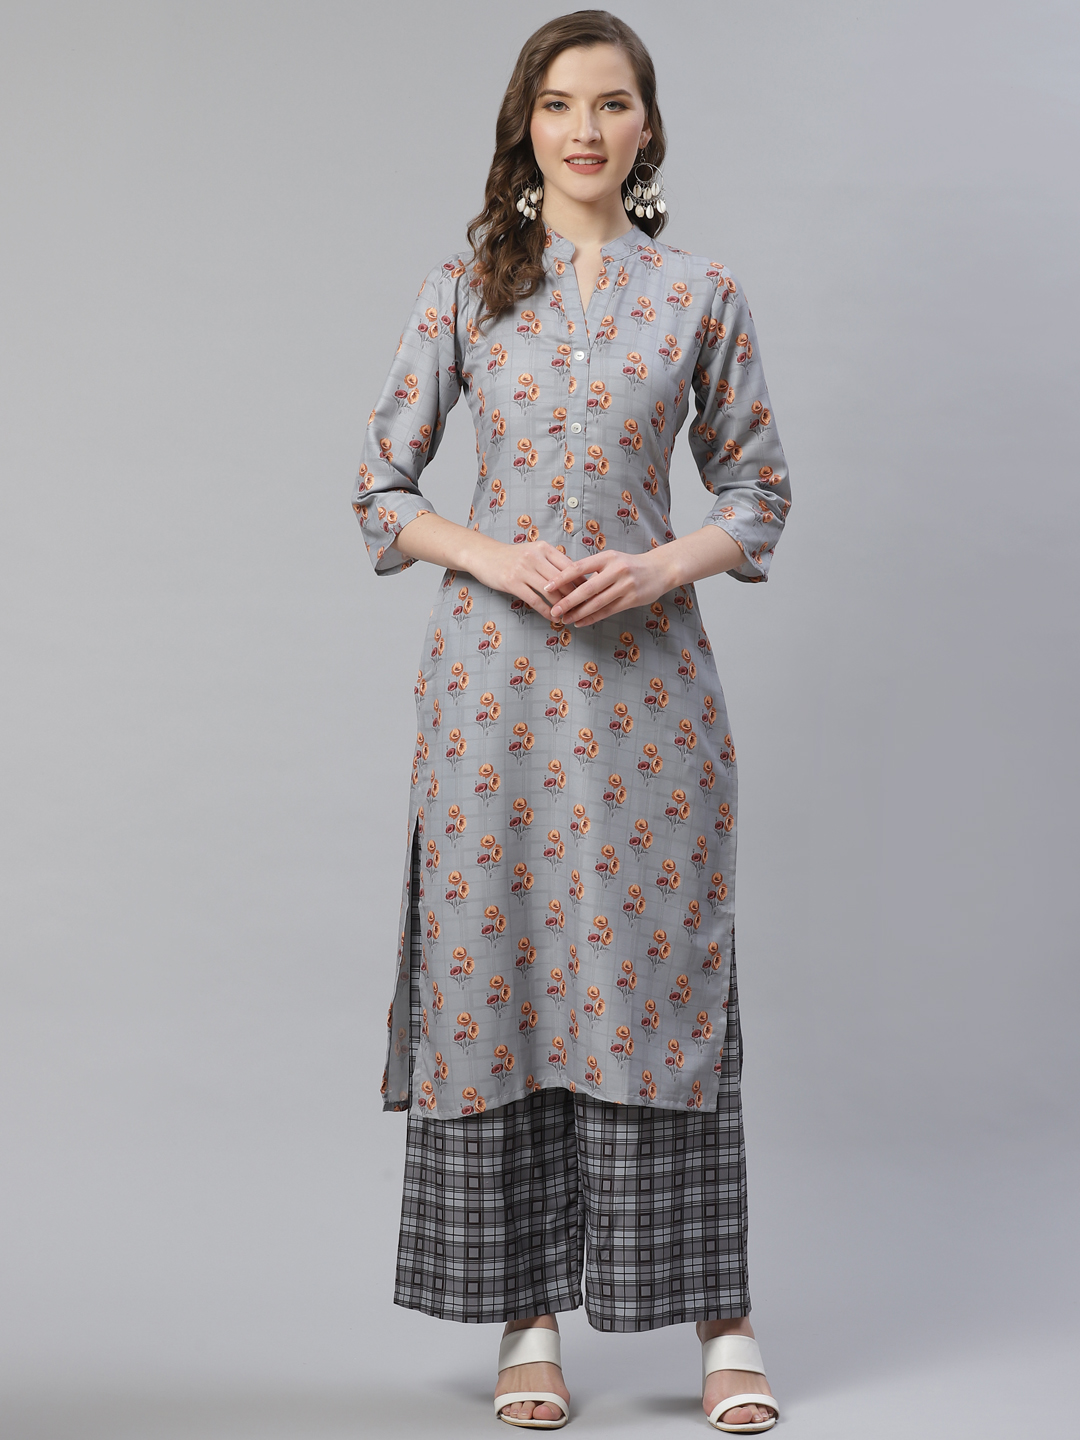 Jompers | Jompers® Women Grey & Beige Floral Printed Kurta with Palazzos